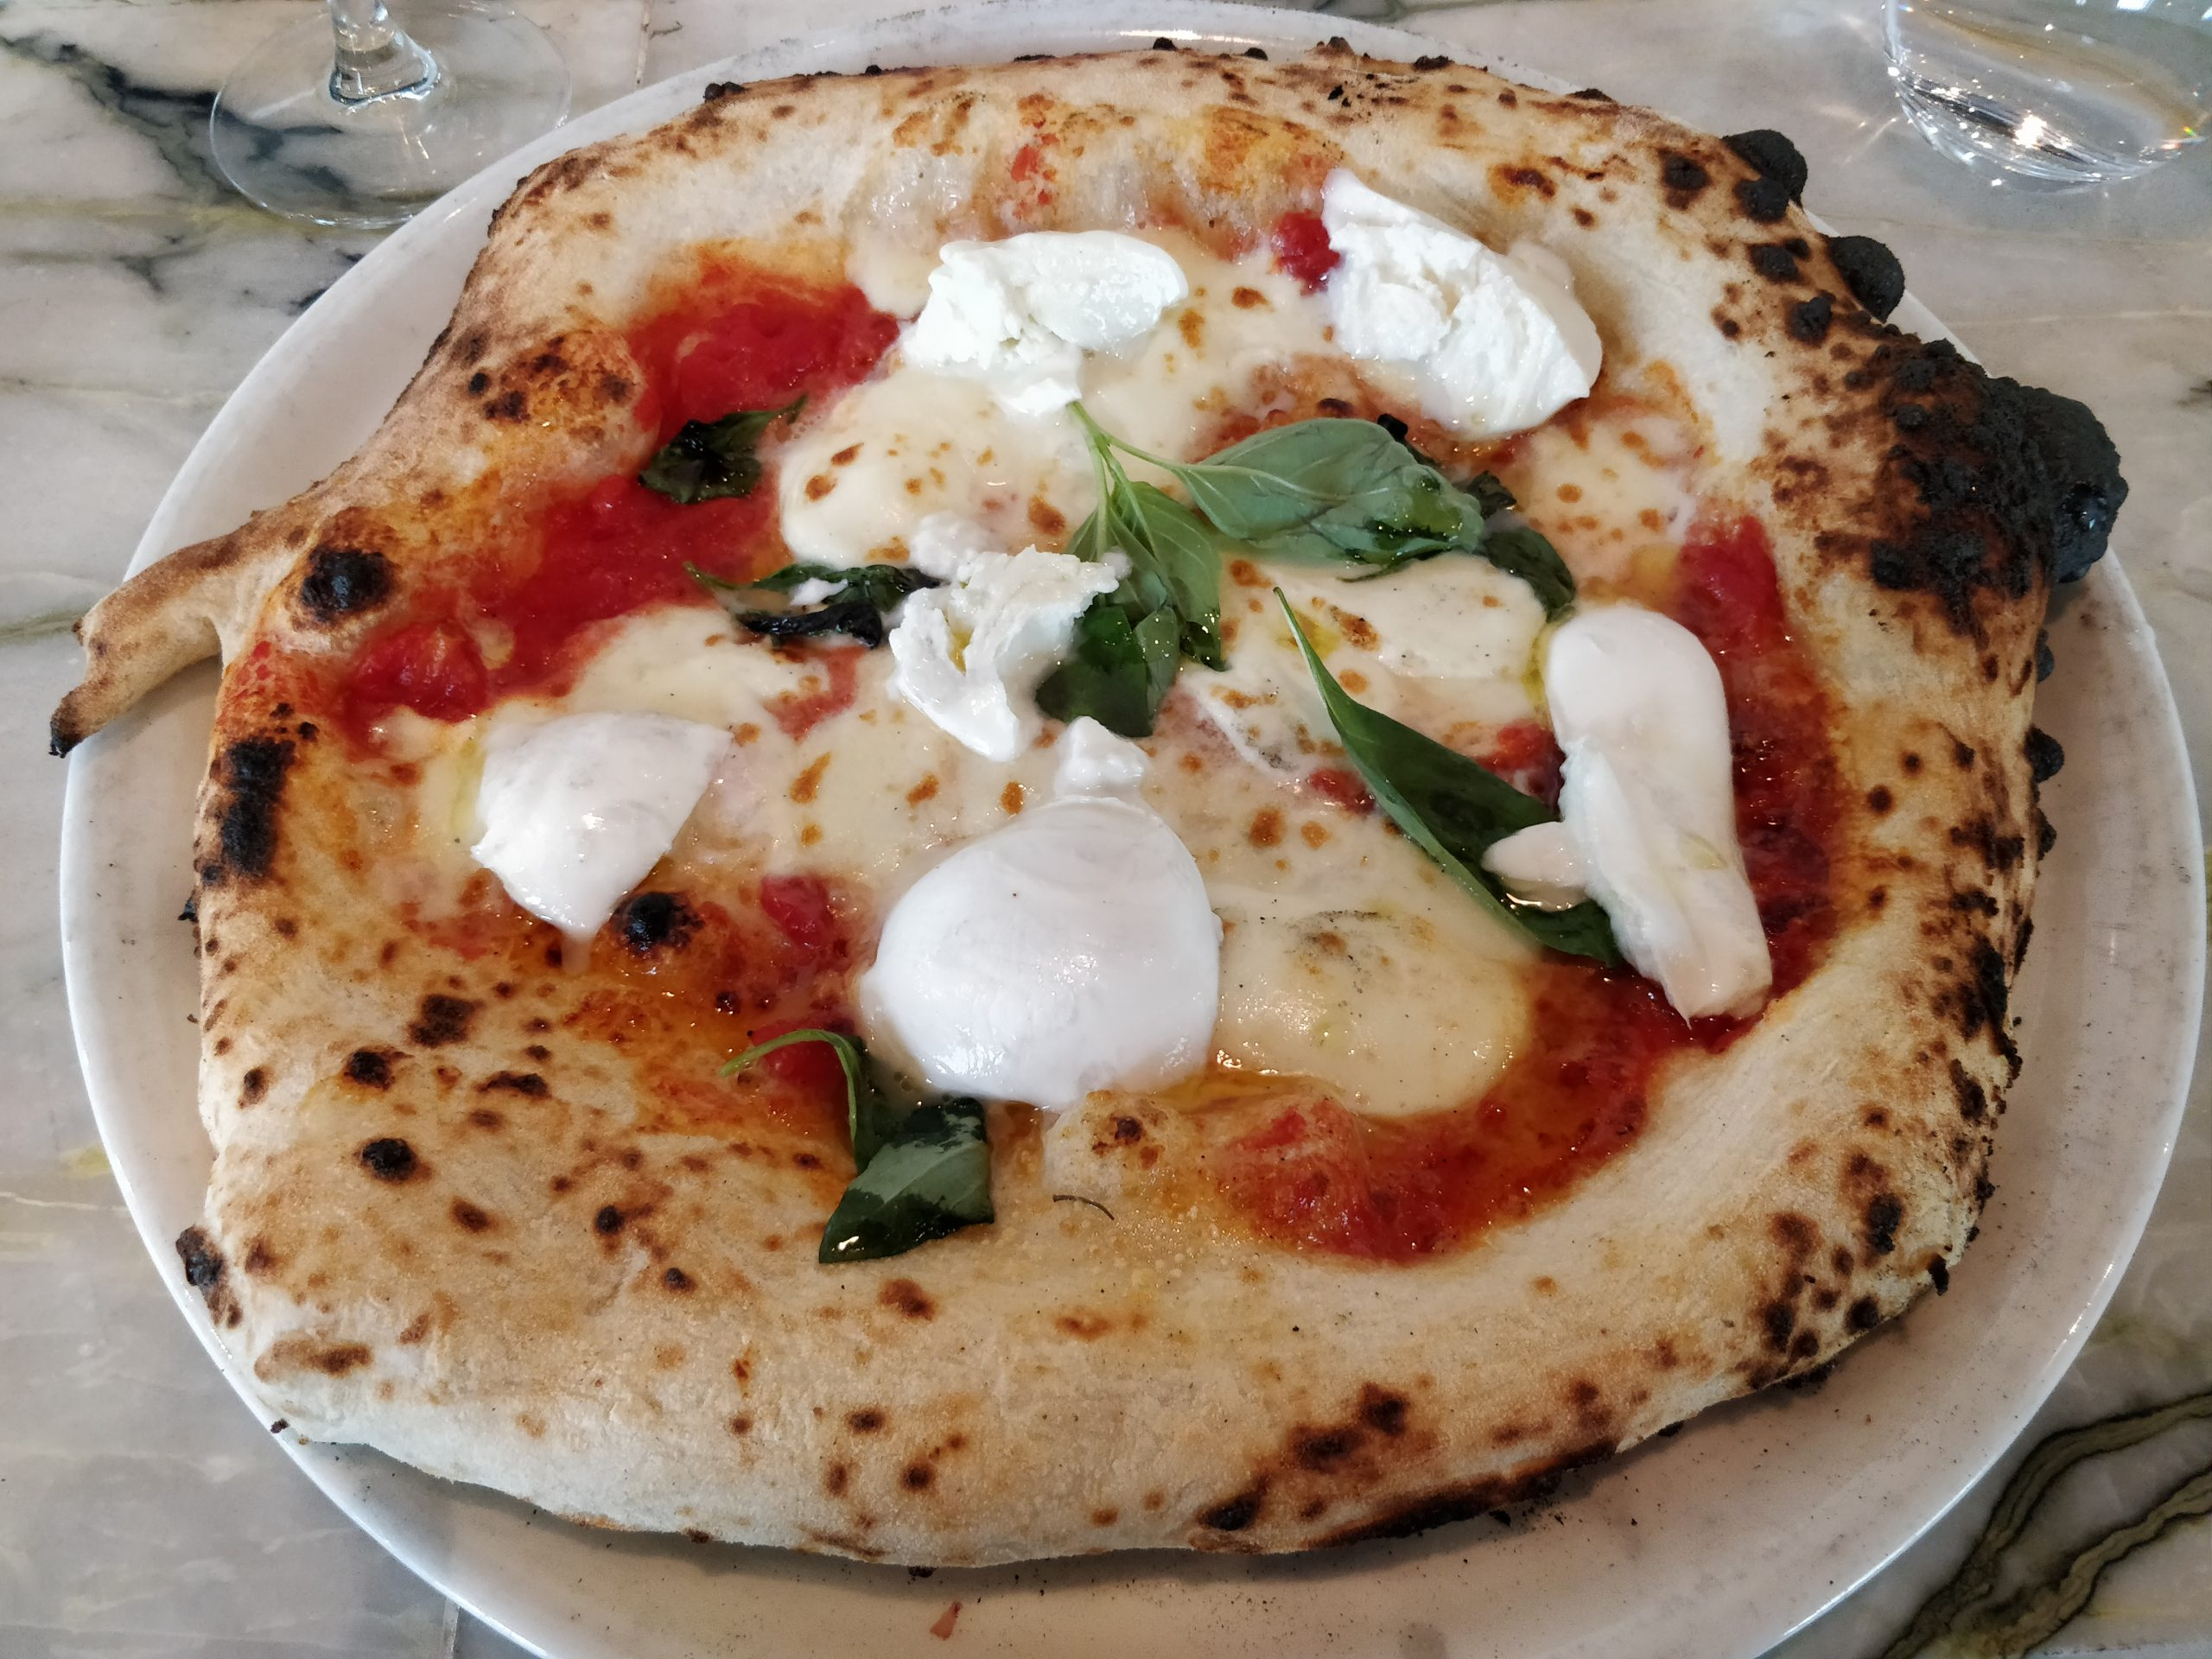 Pizzeria Anima - Pizza senza supervisione